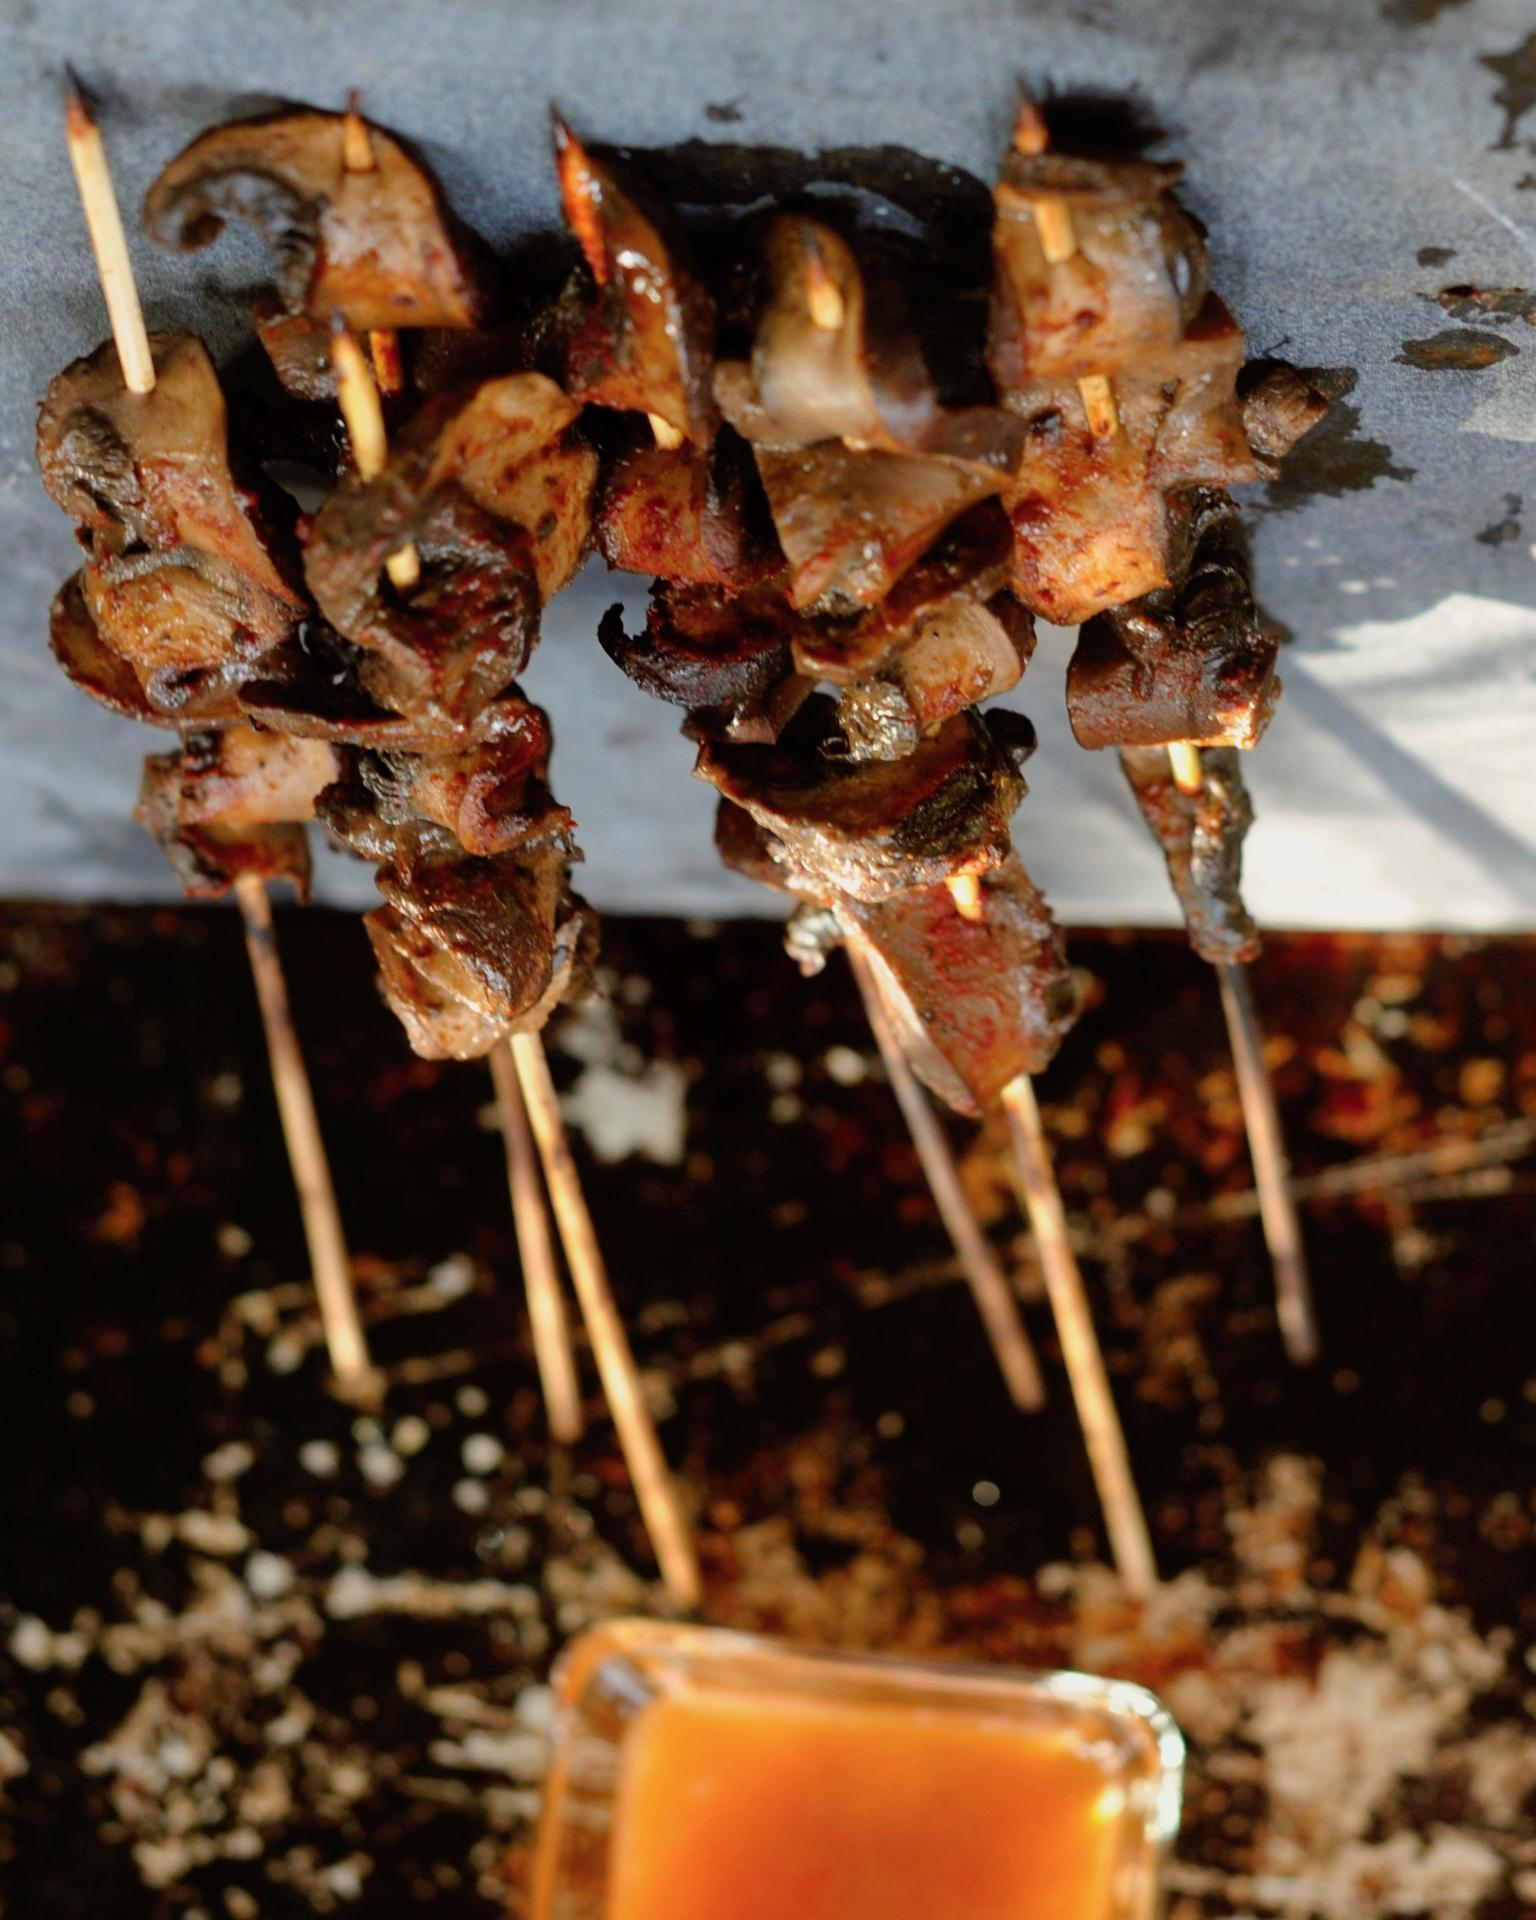 Mushroom satay skewers balanced on a baking sheet